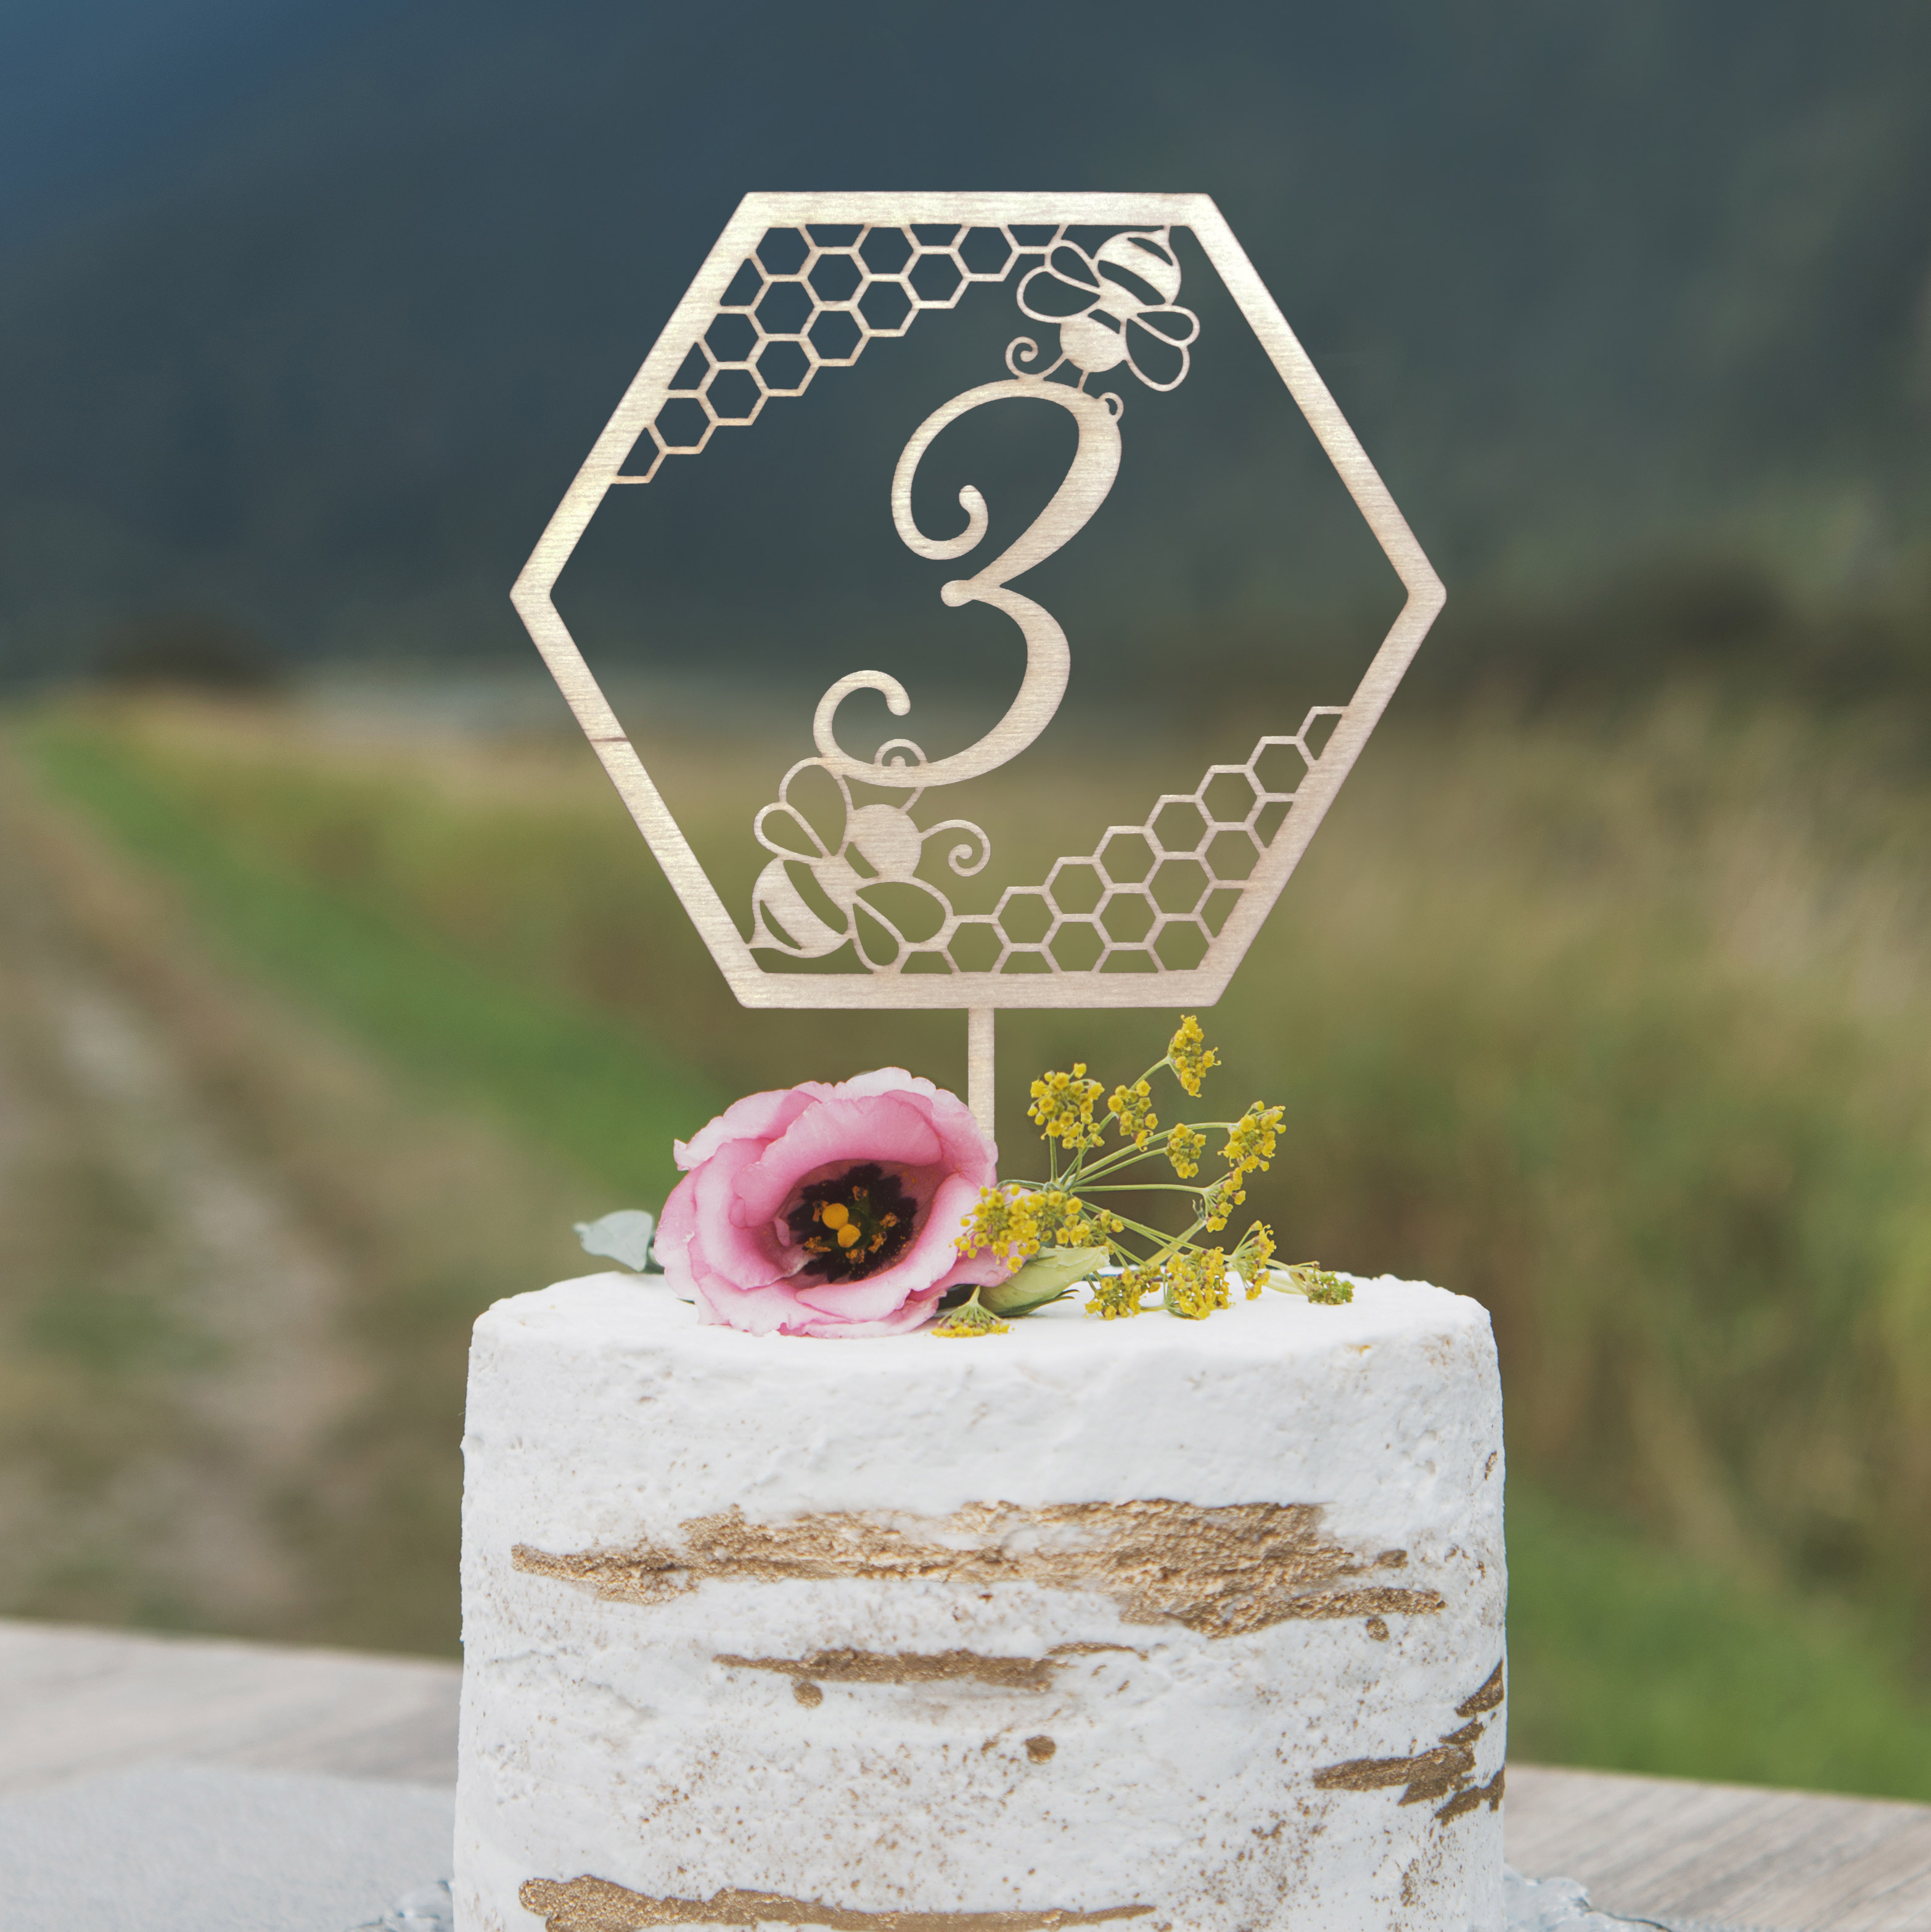 Custom Bee Birthday cake topper by Thistle and Lace